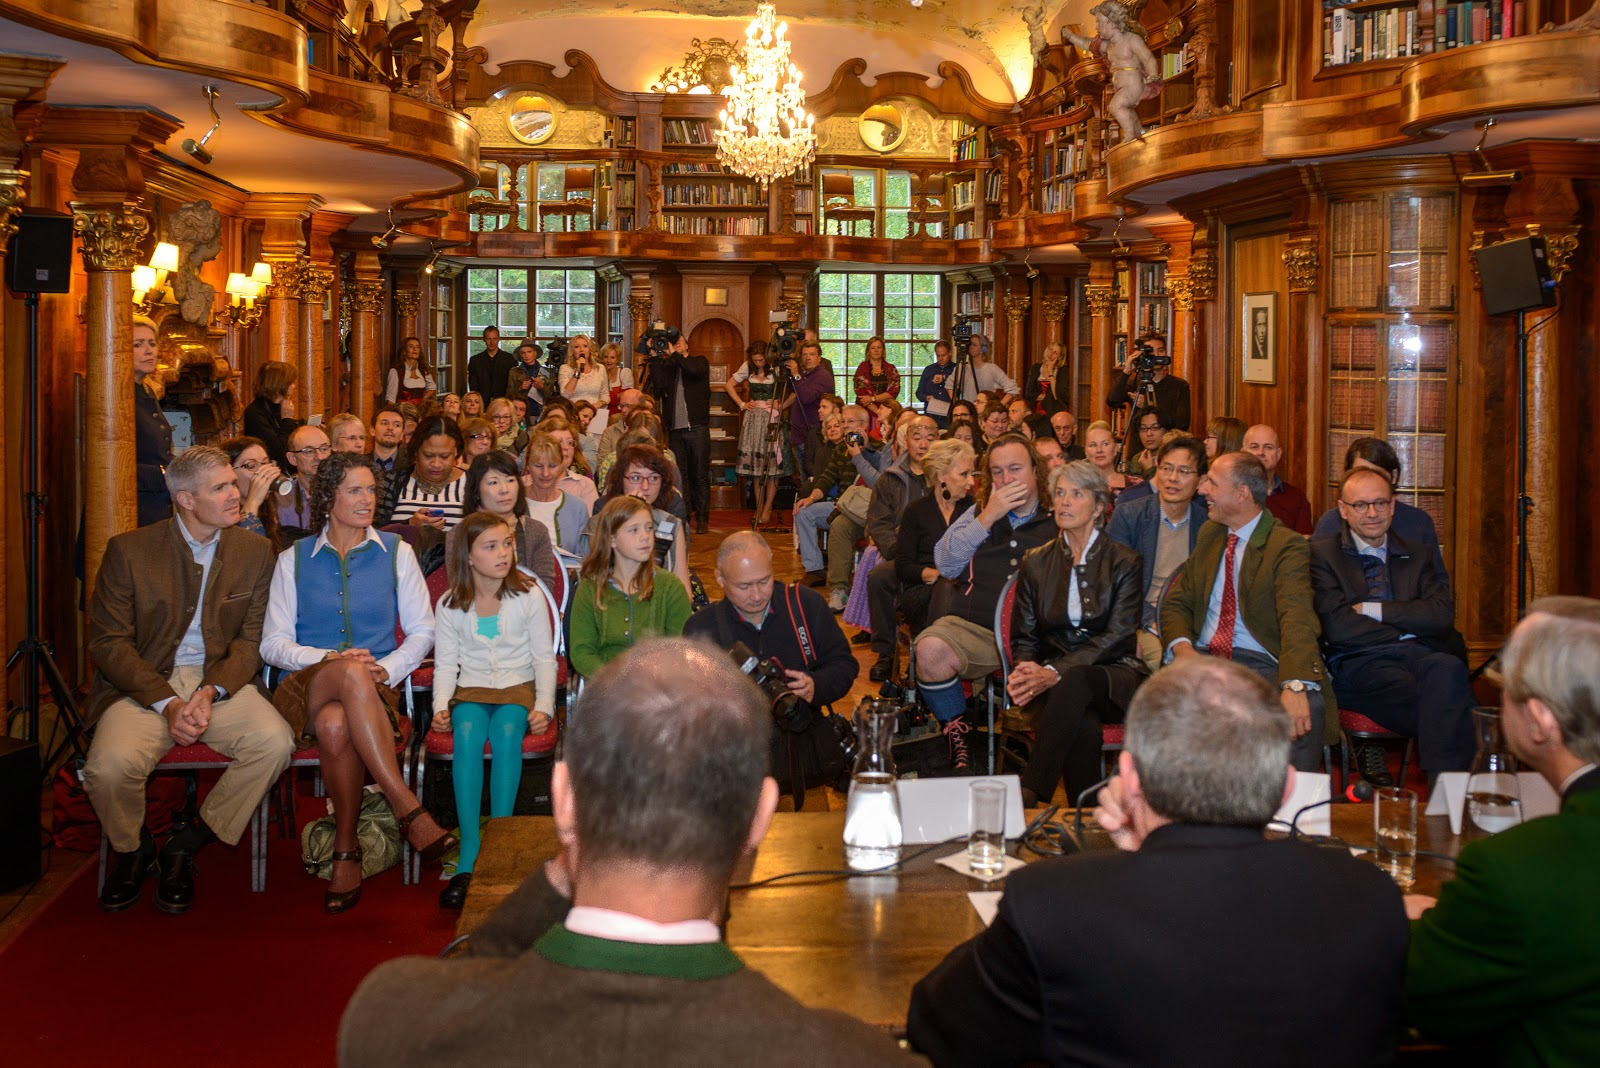 Press conference in the library at the Leopoldskron Castle in Salzburg, Austria. Do you see me? Photo: © Tourismus-Salzburg GmbH. Unauthorized use is prohibited.